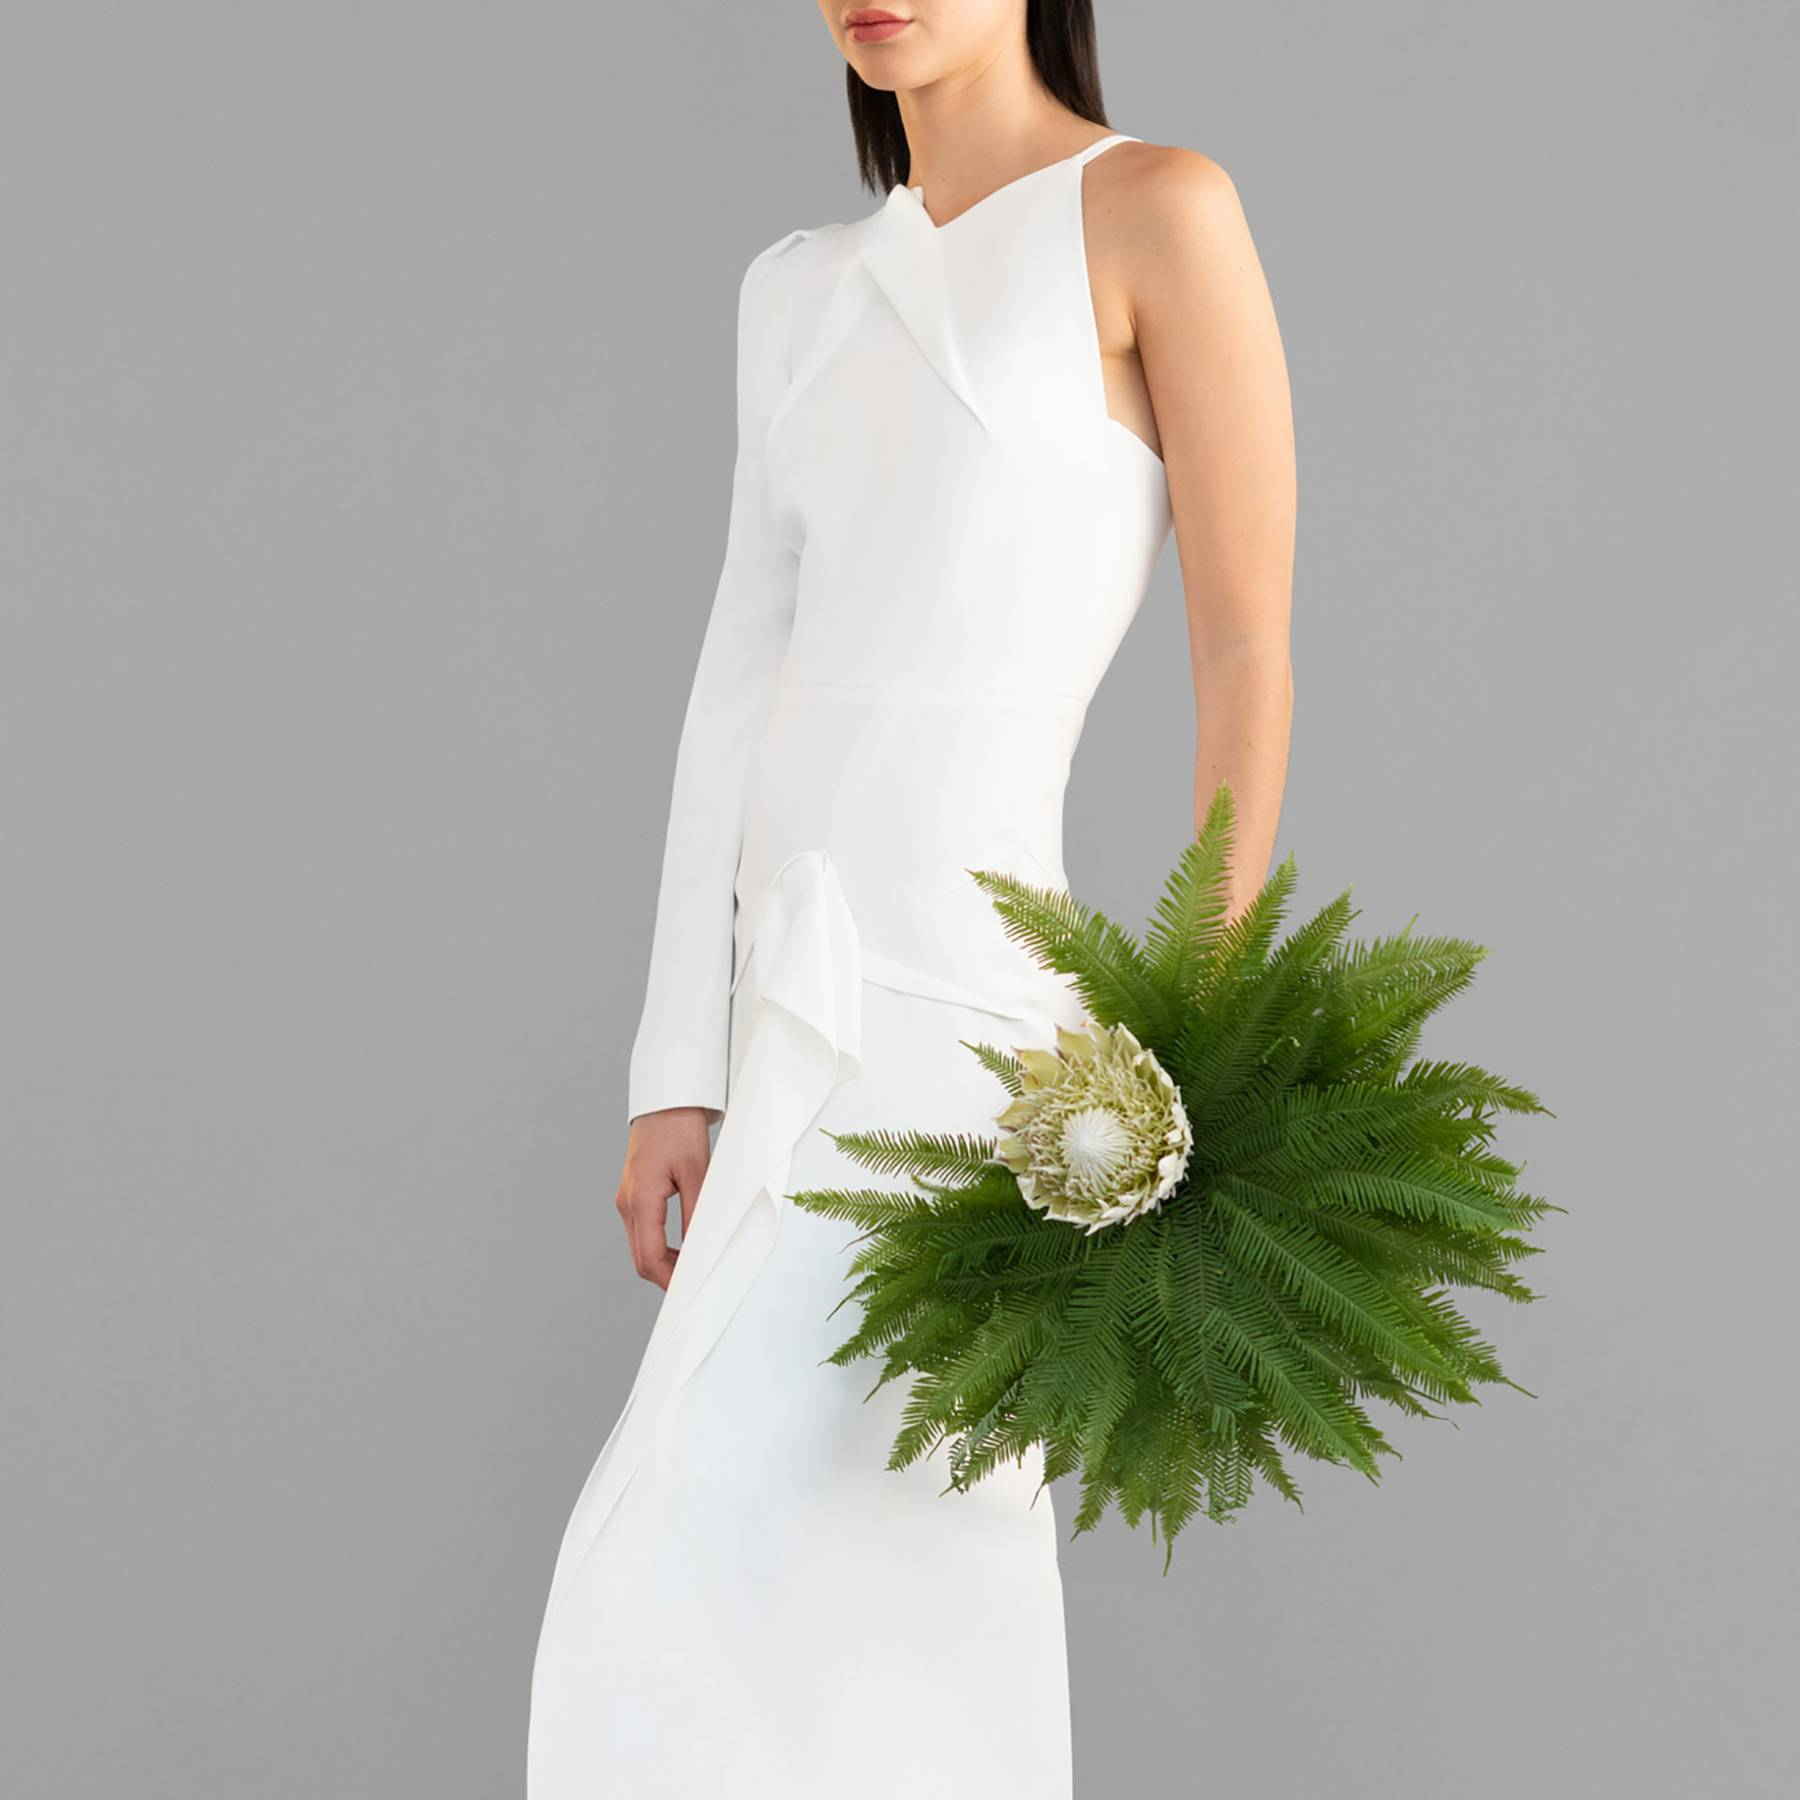 Roland Mouret launches his first bridal collection